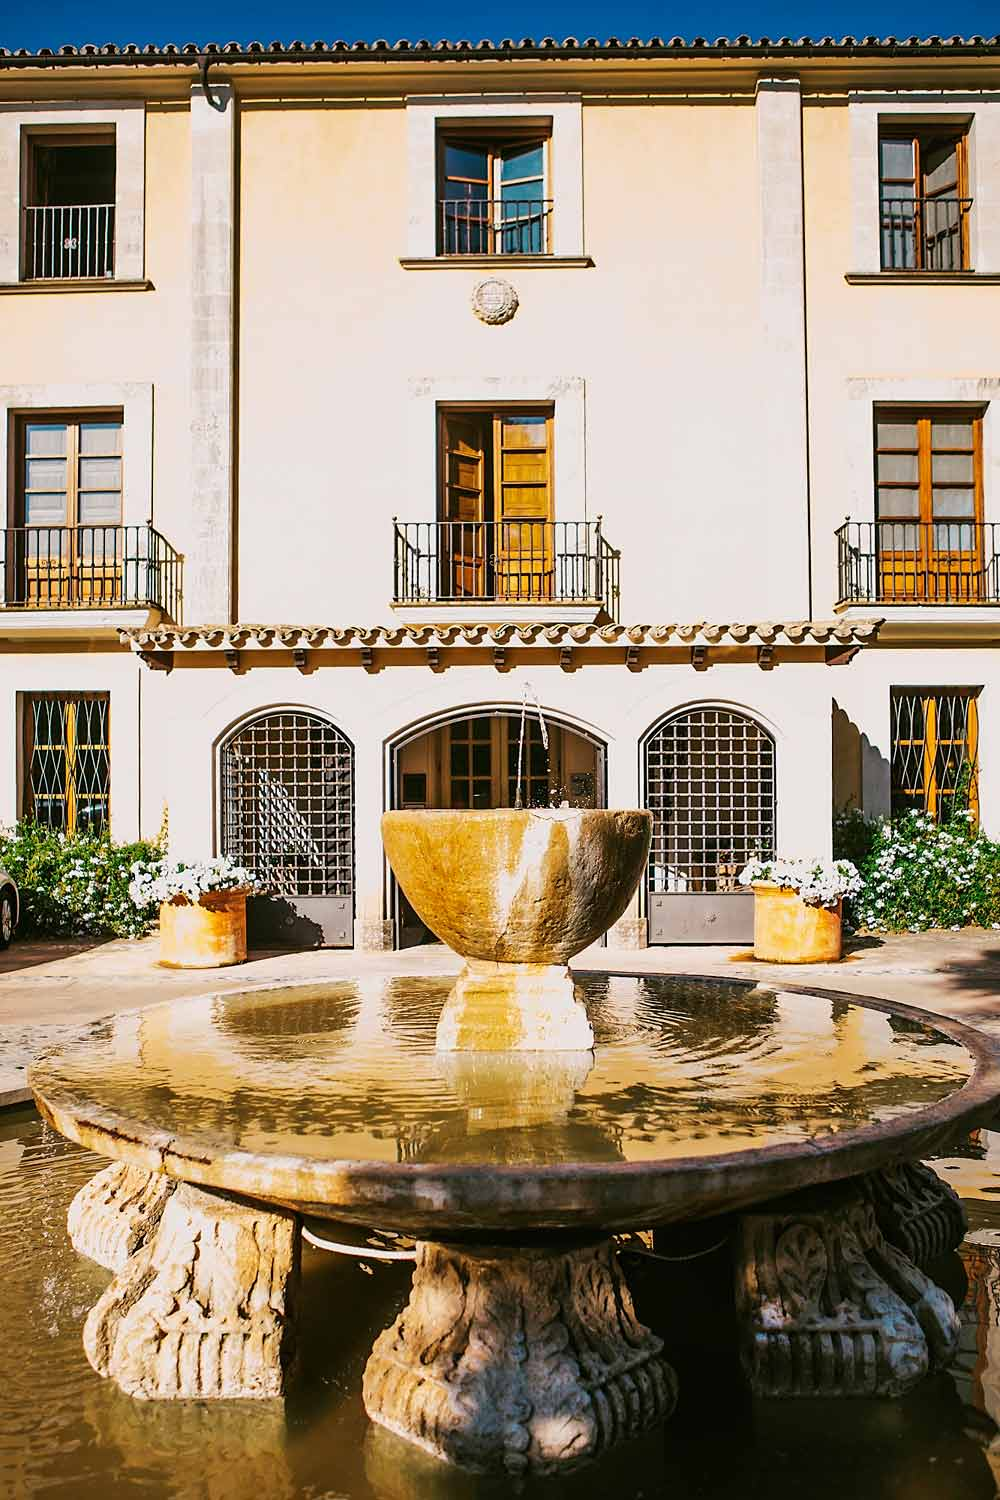 Exterior of Fountain at Son Julia Country House HotelBalearesSpain